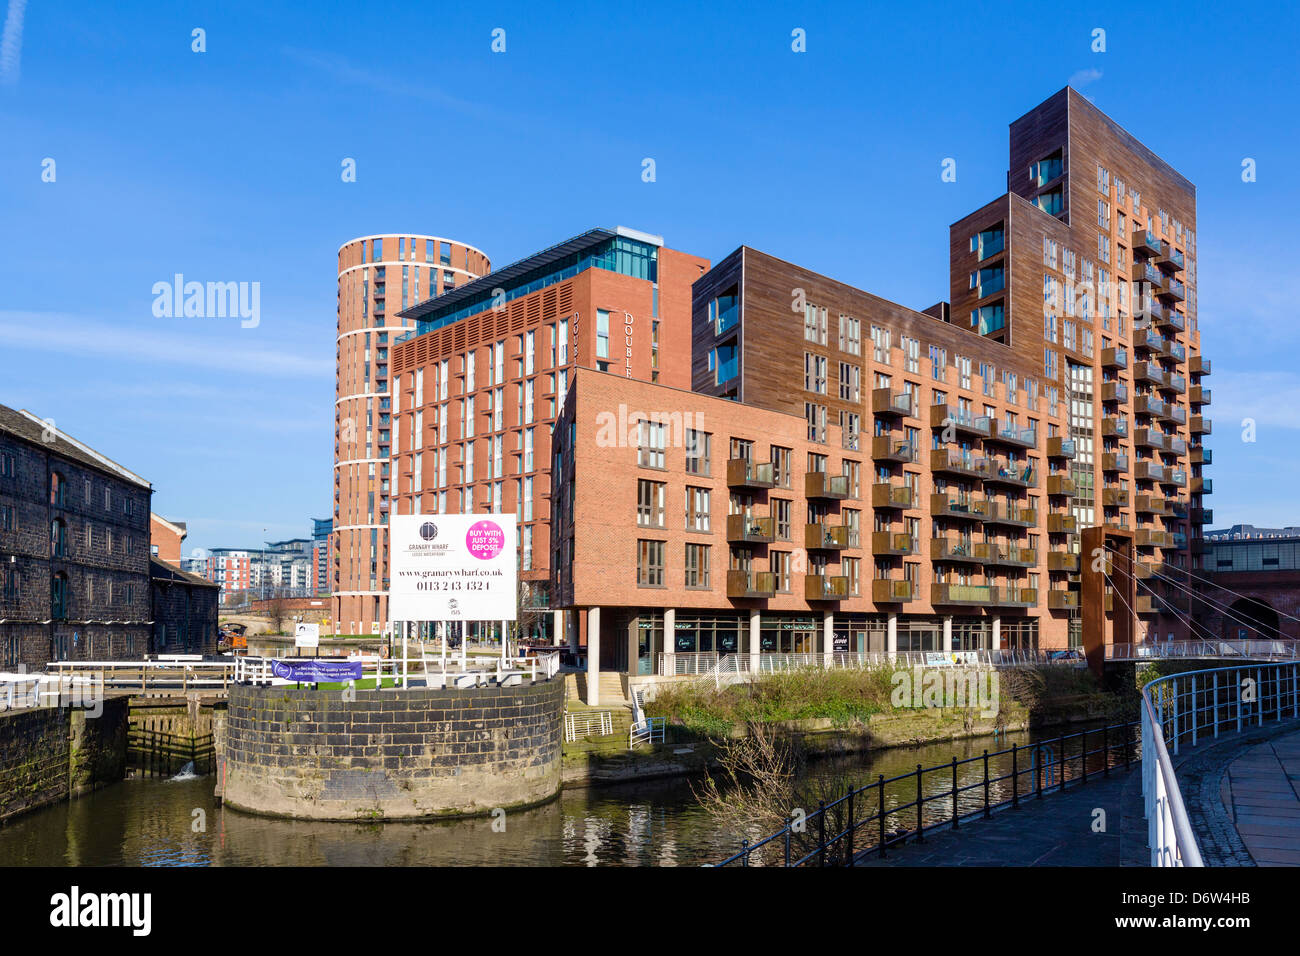 Waterfront apartments and the DoubleTree Hotel at Granary Wharf in the city centre, Leeds, West Yorkshire, UK - Stock Image